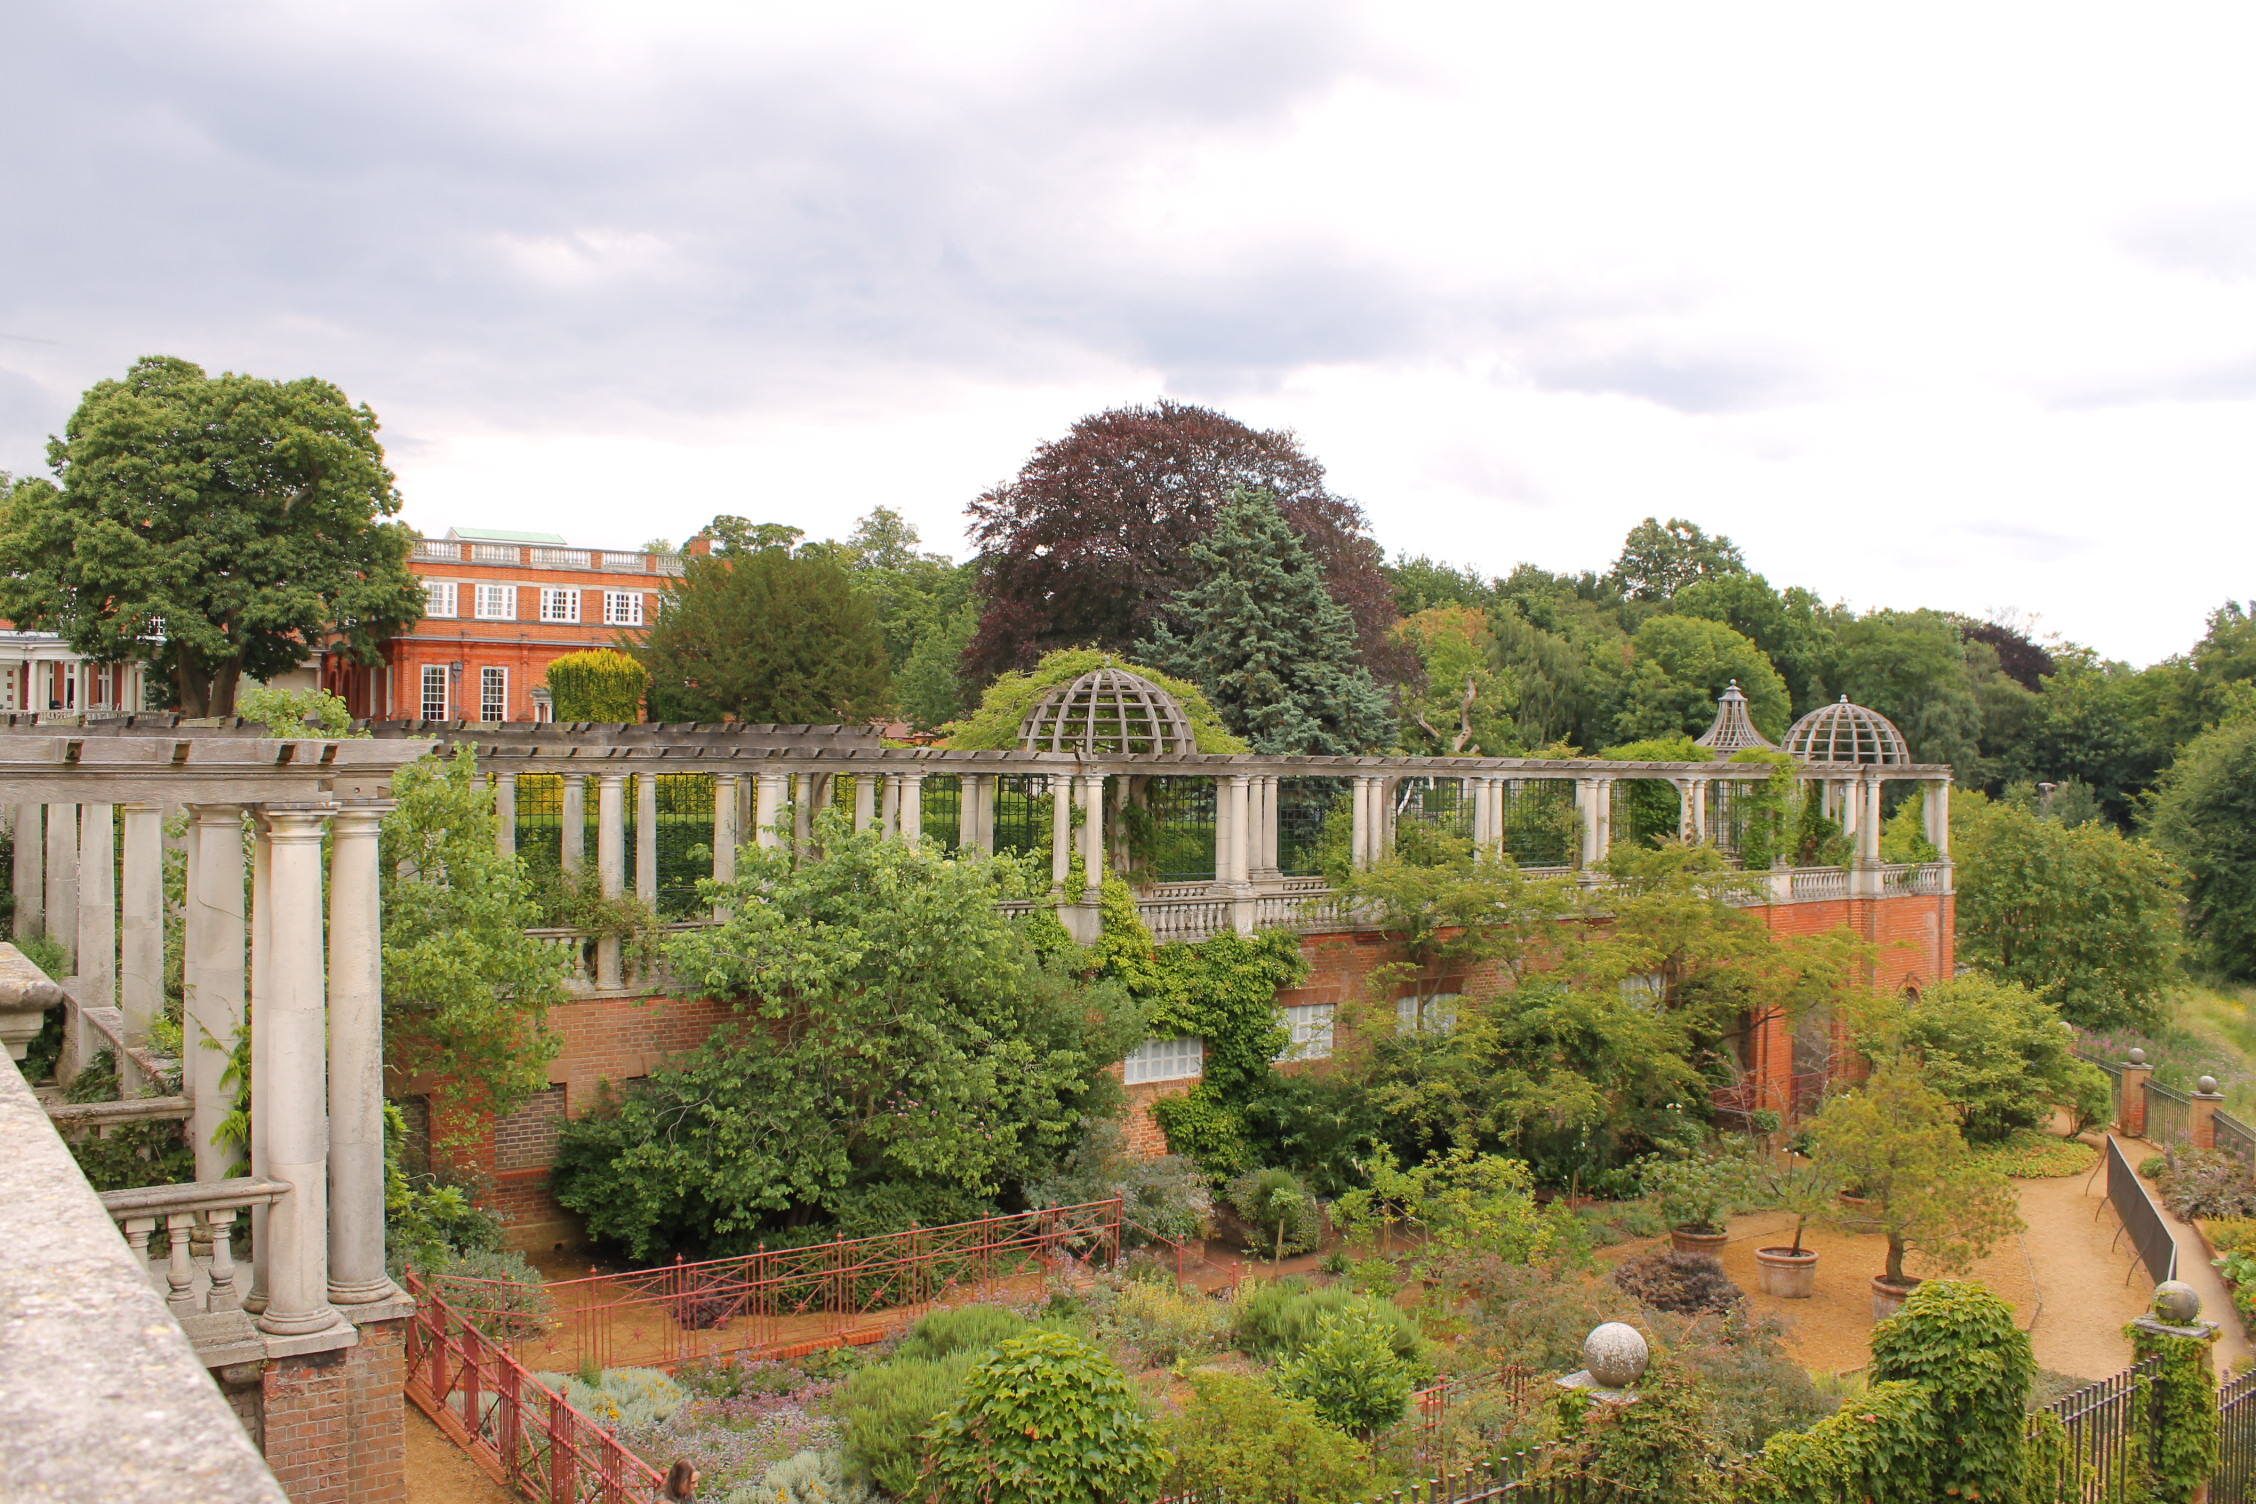 Hill Garden and Pergola Hampstead Hill - Beatriz Ramirez